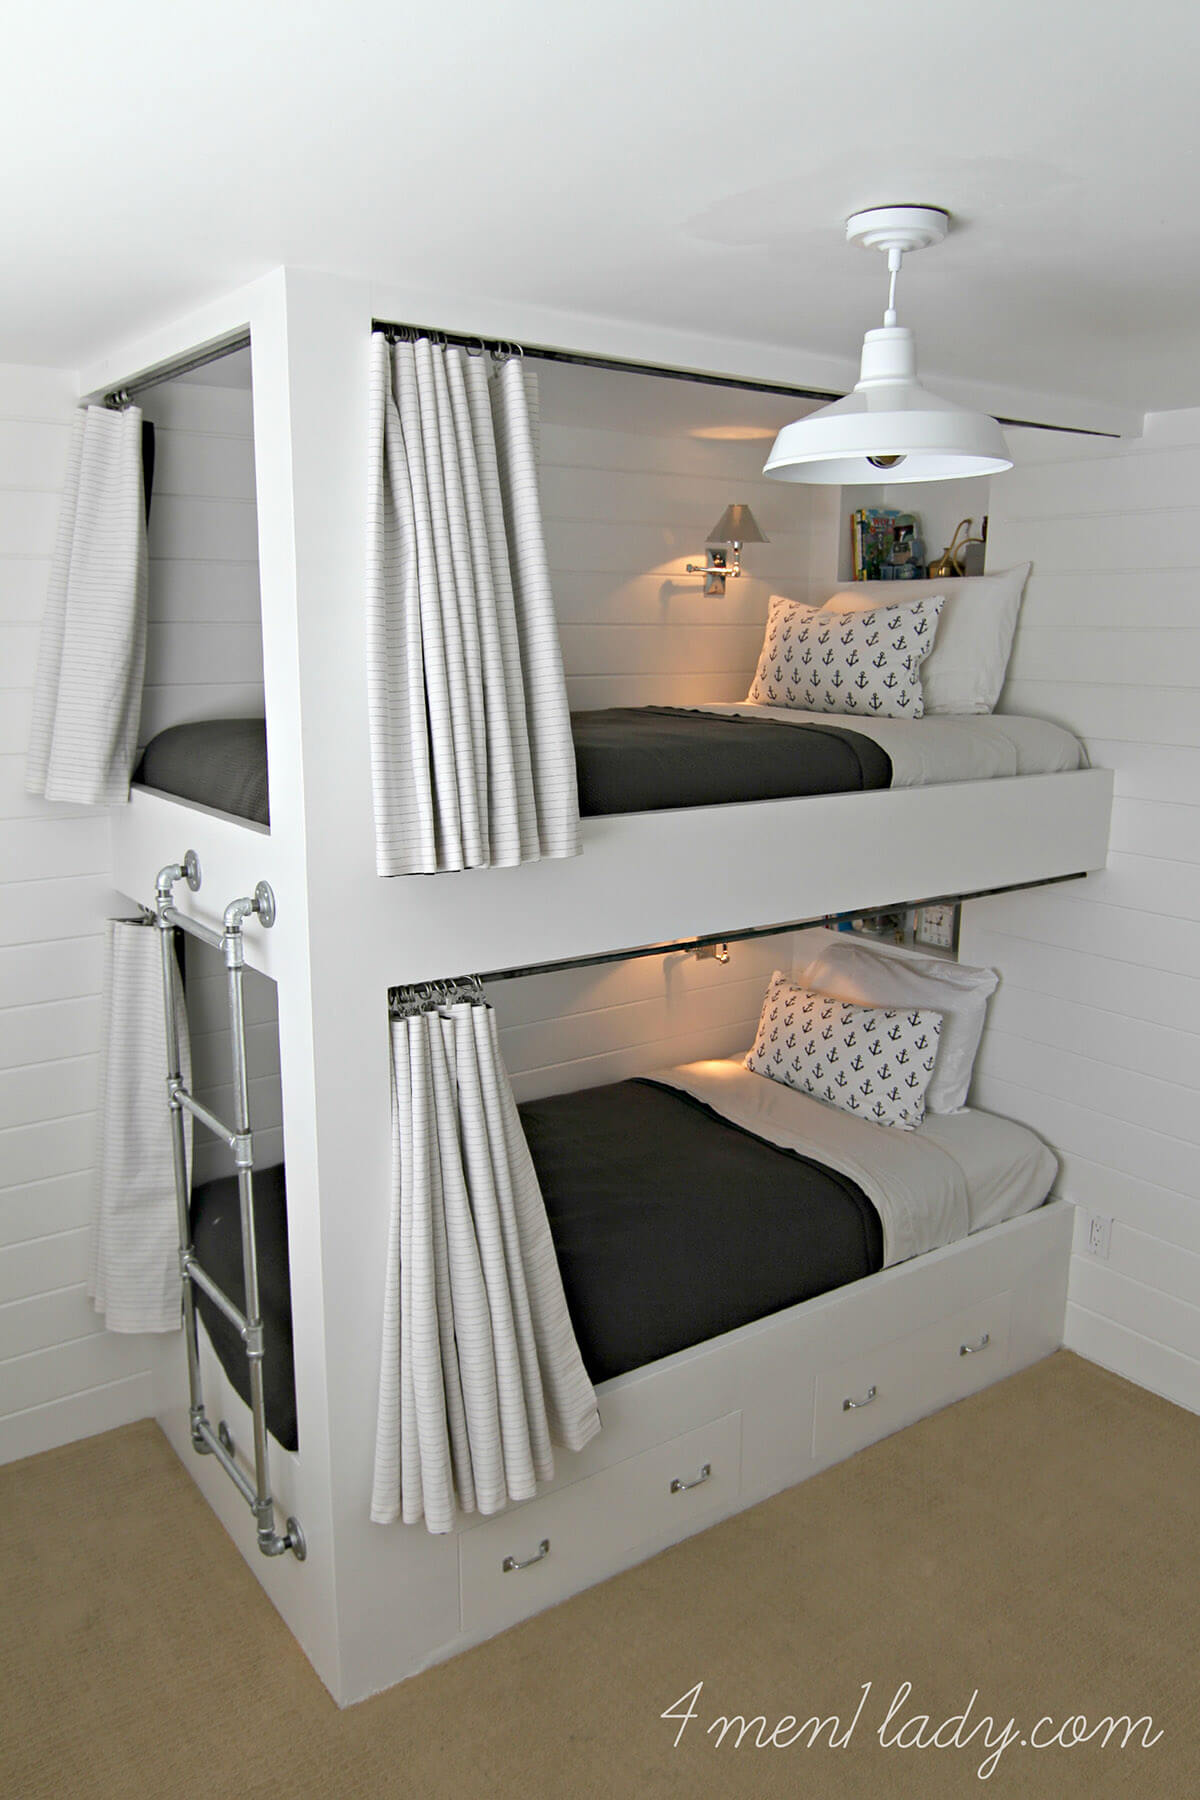 The Beauty of Built-In Bunk Beds